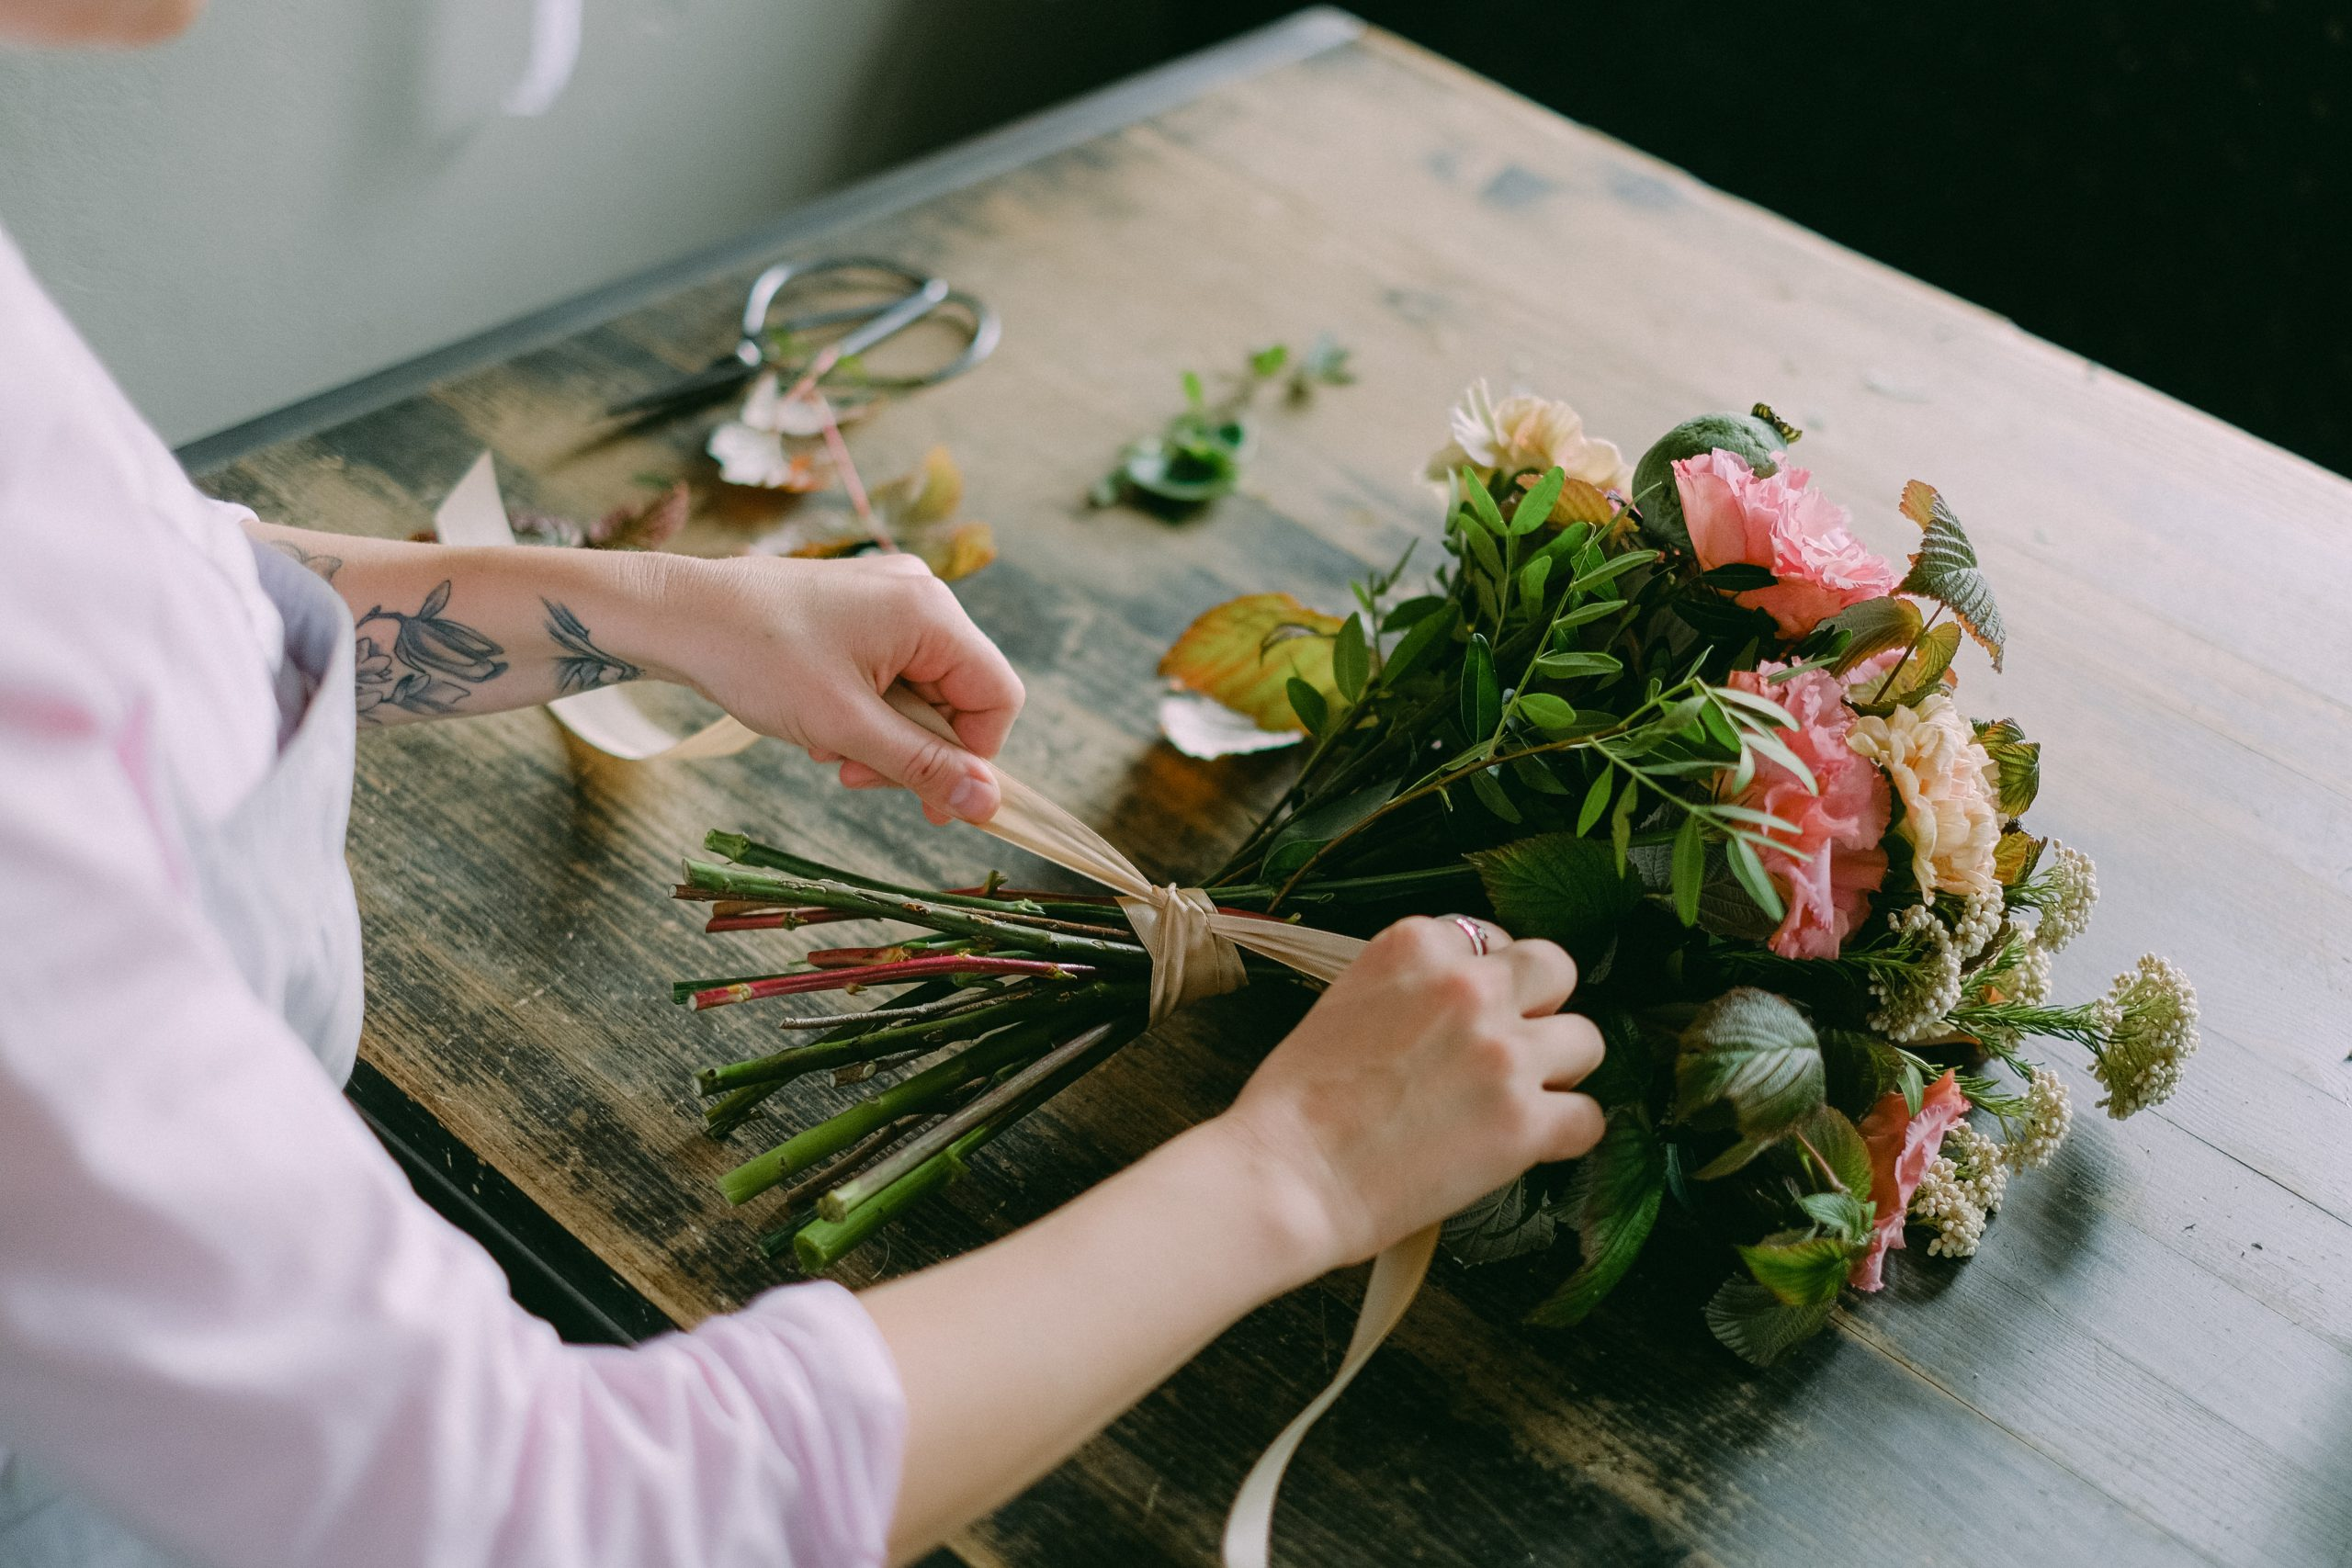 Person arranging a bouquet of flowers